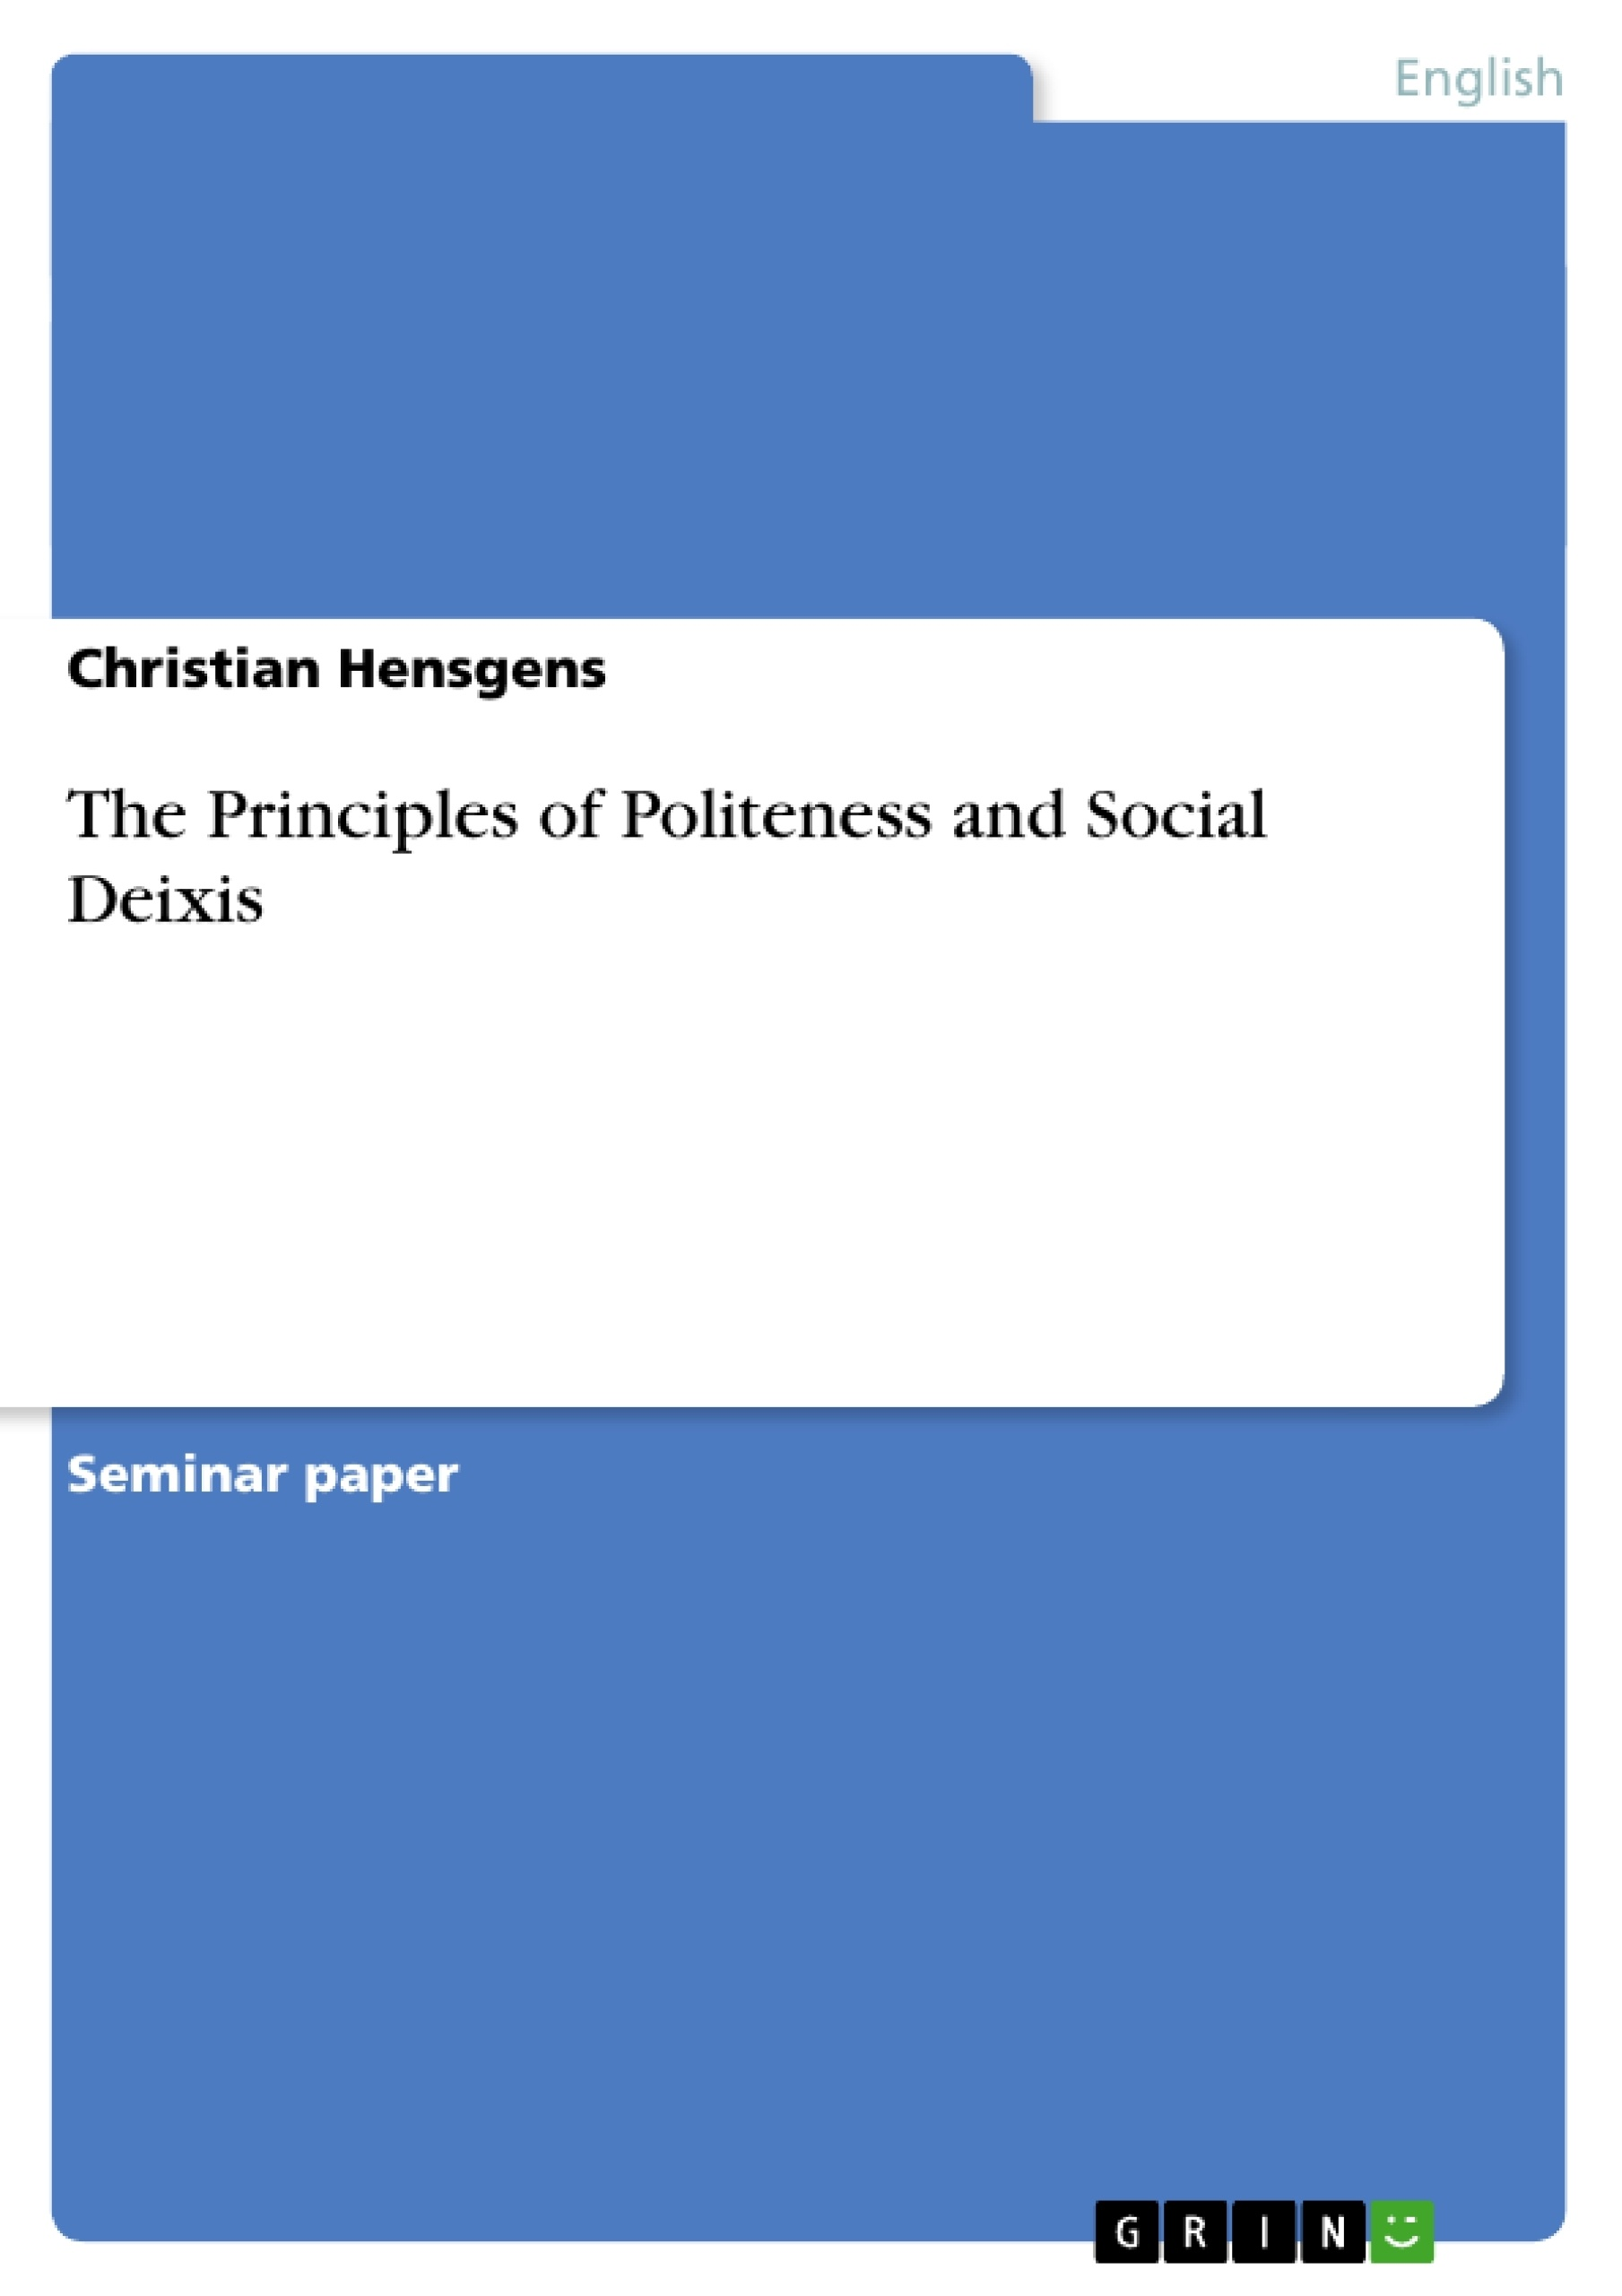 Title: The Principles of Politeness and Social Deixis